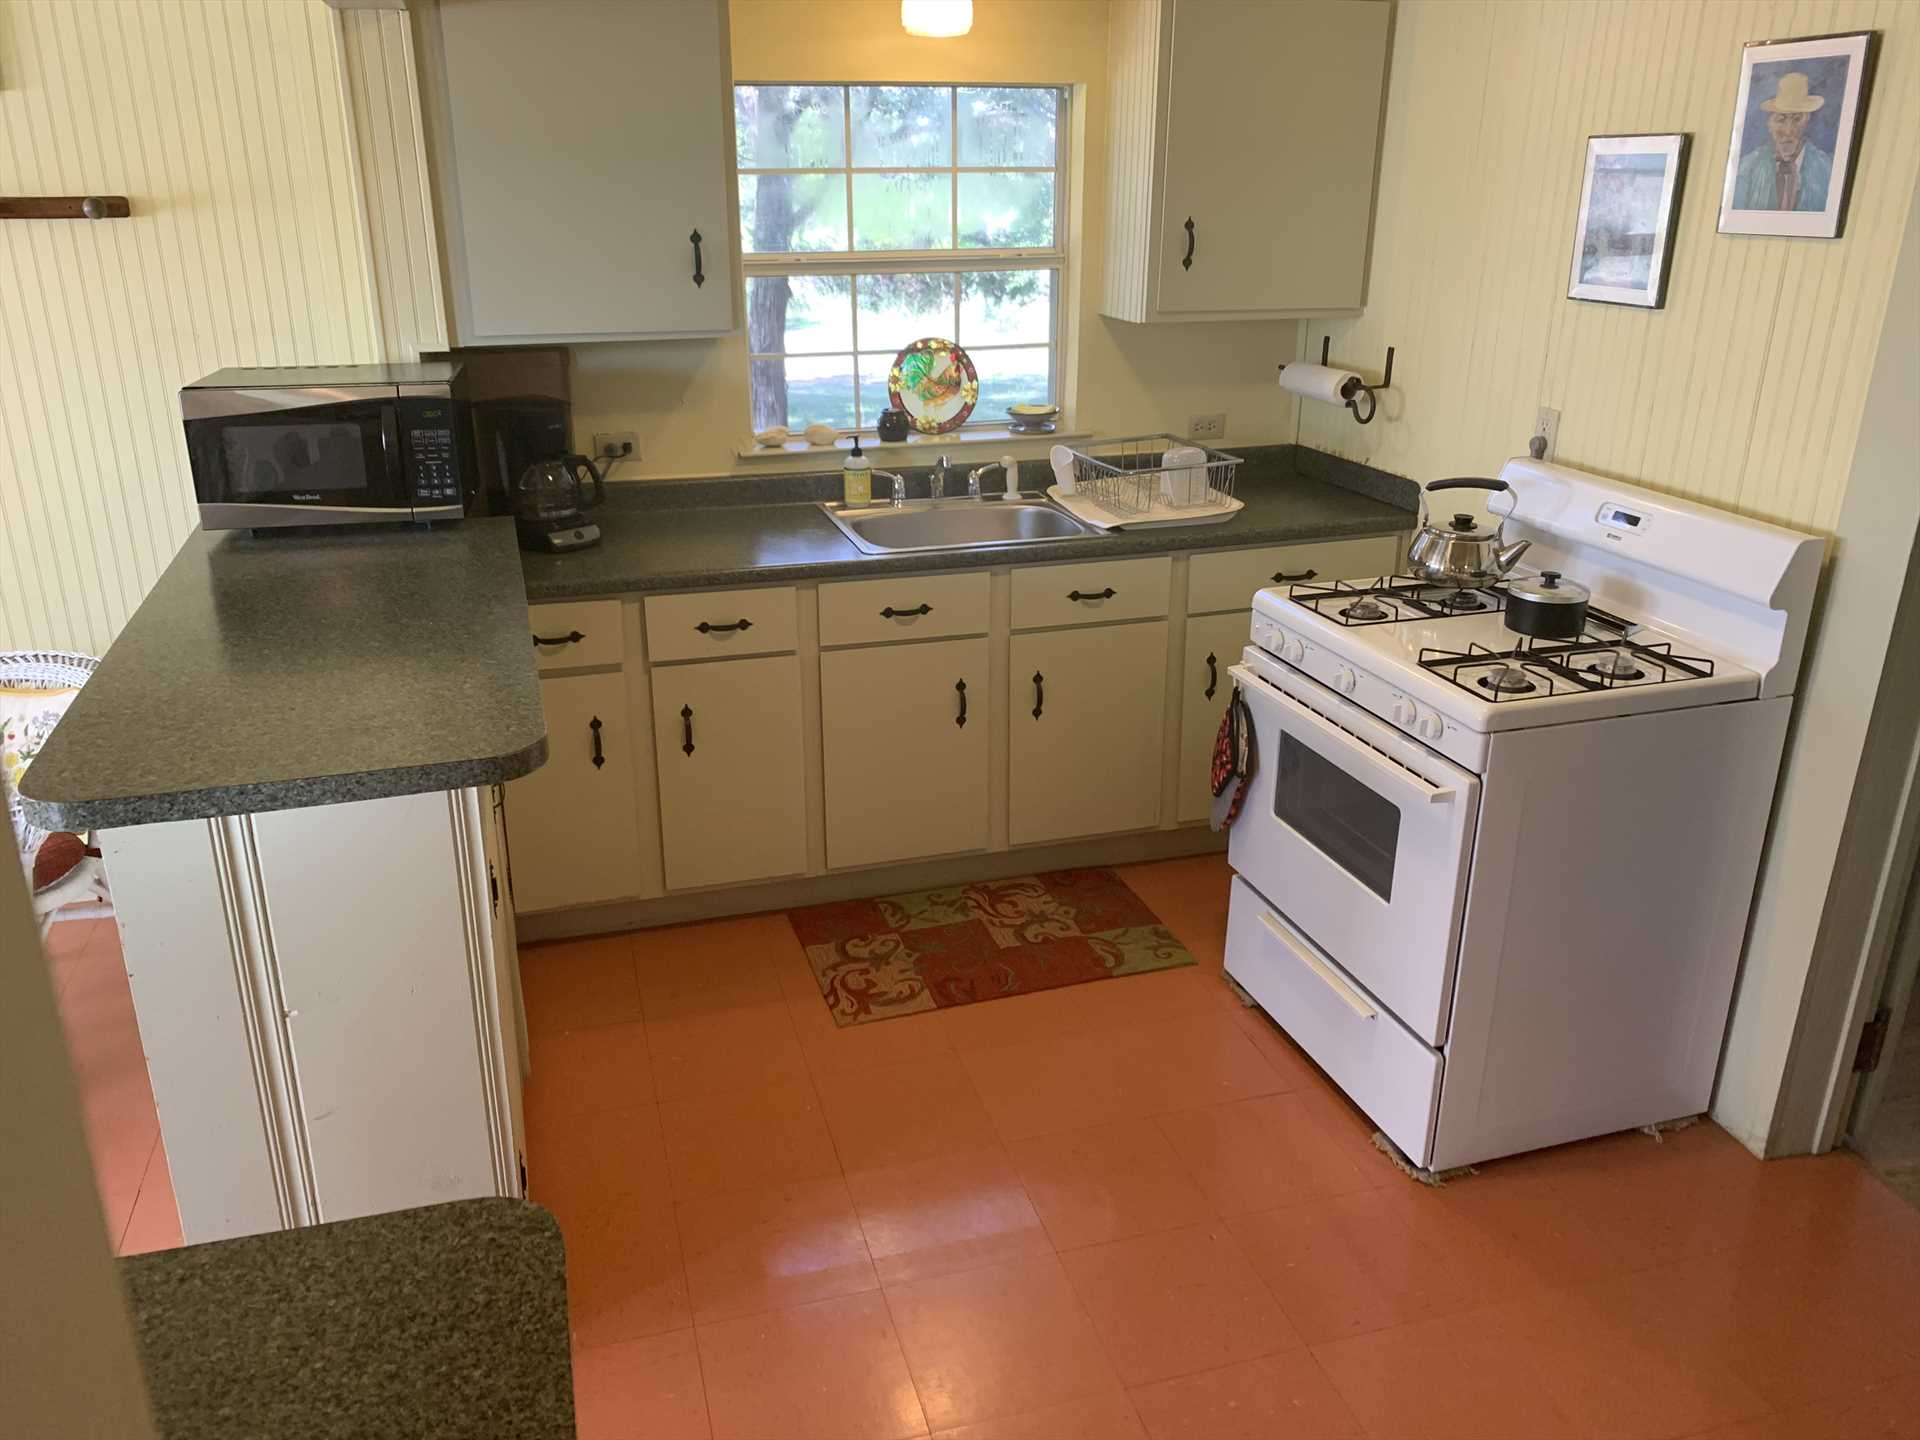 The fully-equipped kitchen also includes complimentary snacks!